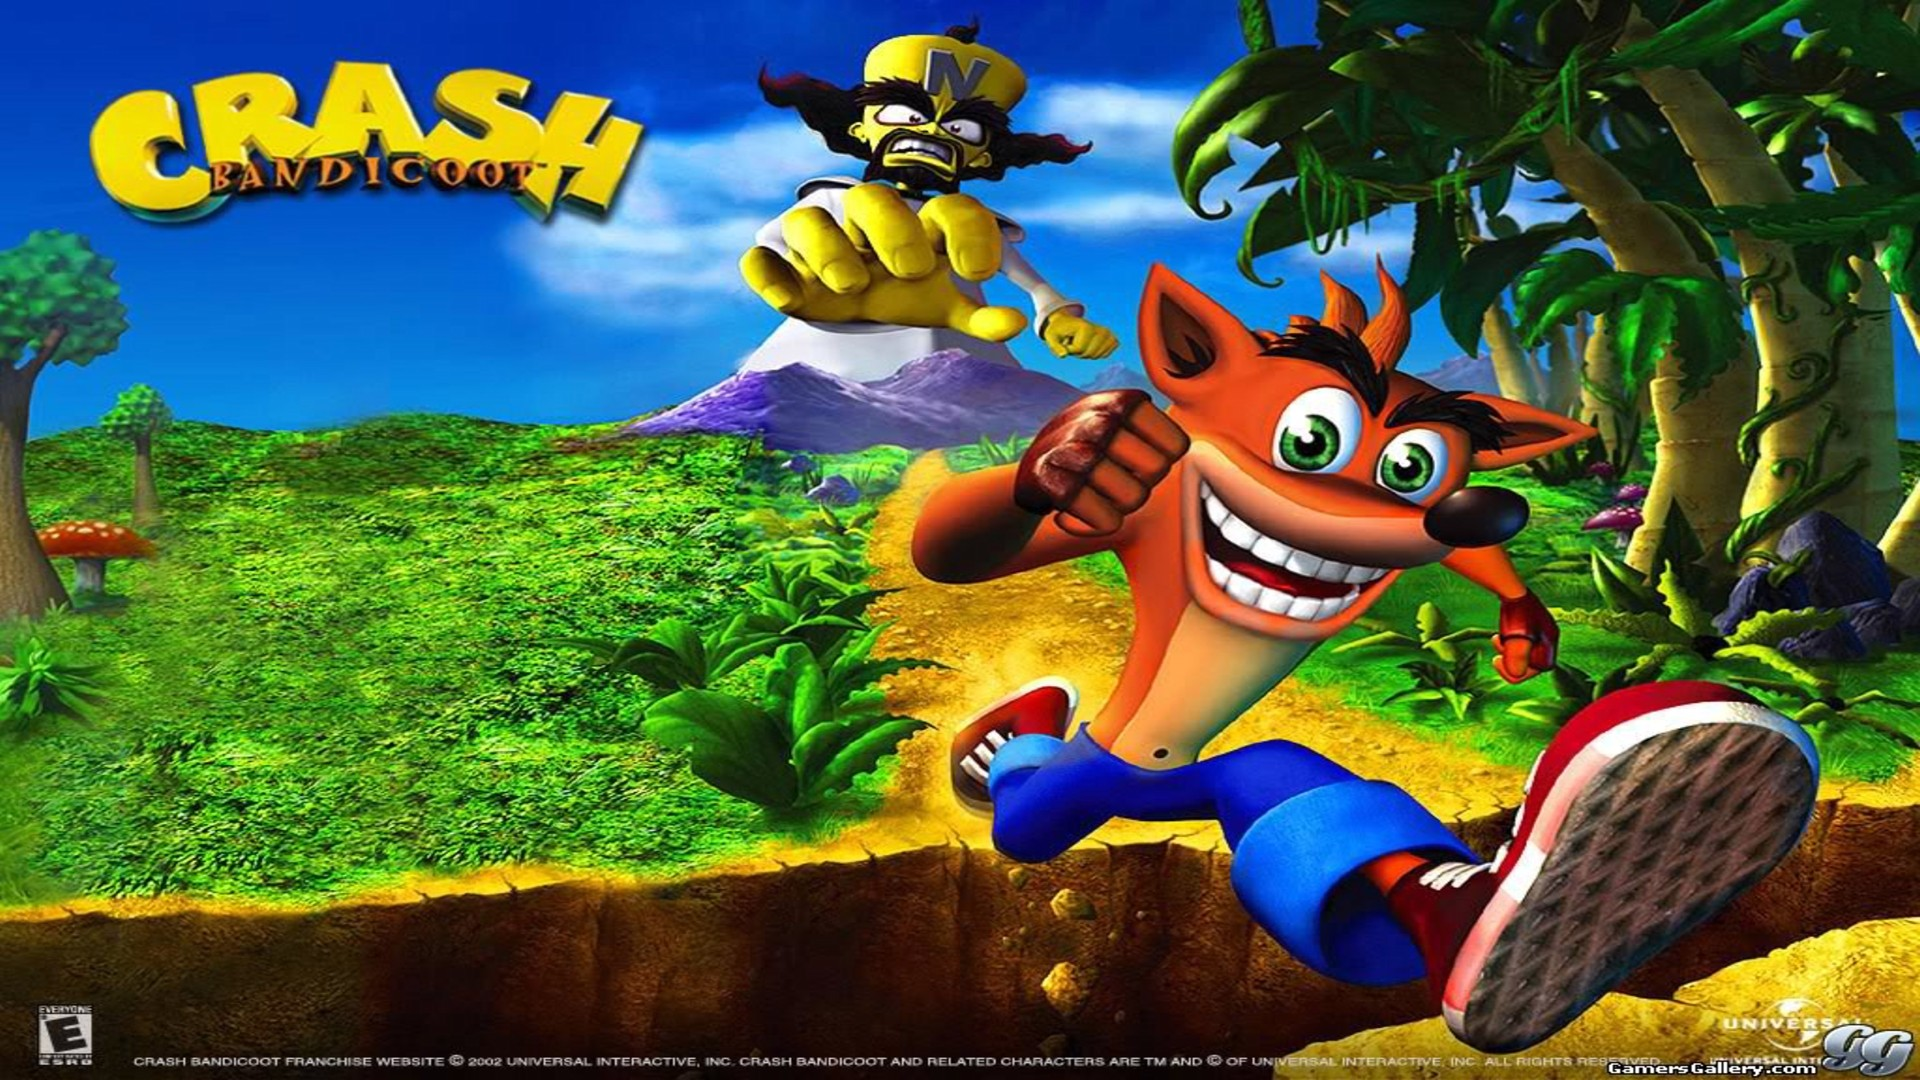 Crash Bandicoot Wallpaper ① Download Free High Resolution